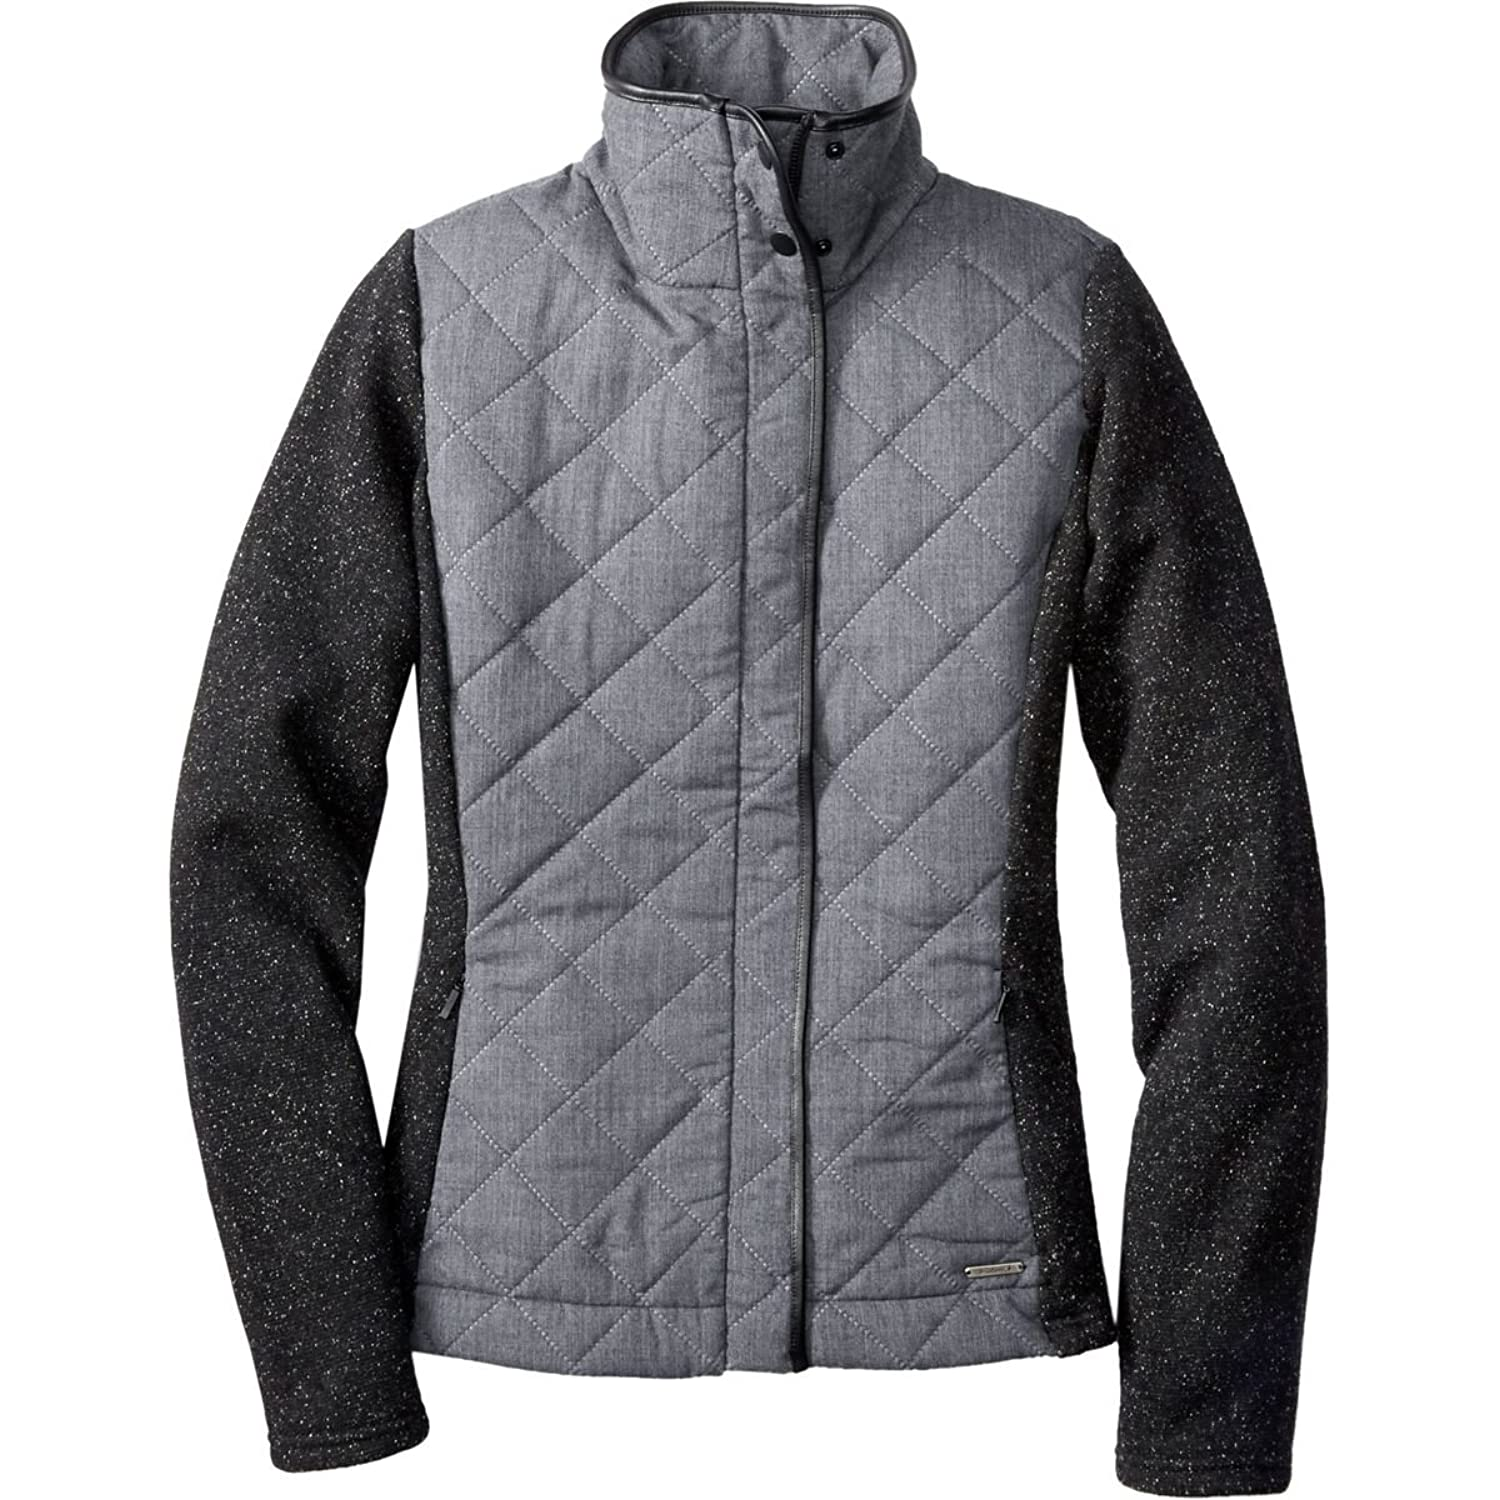 quilt g subwear meefic jacket products star quilted raw